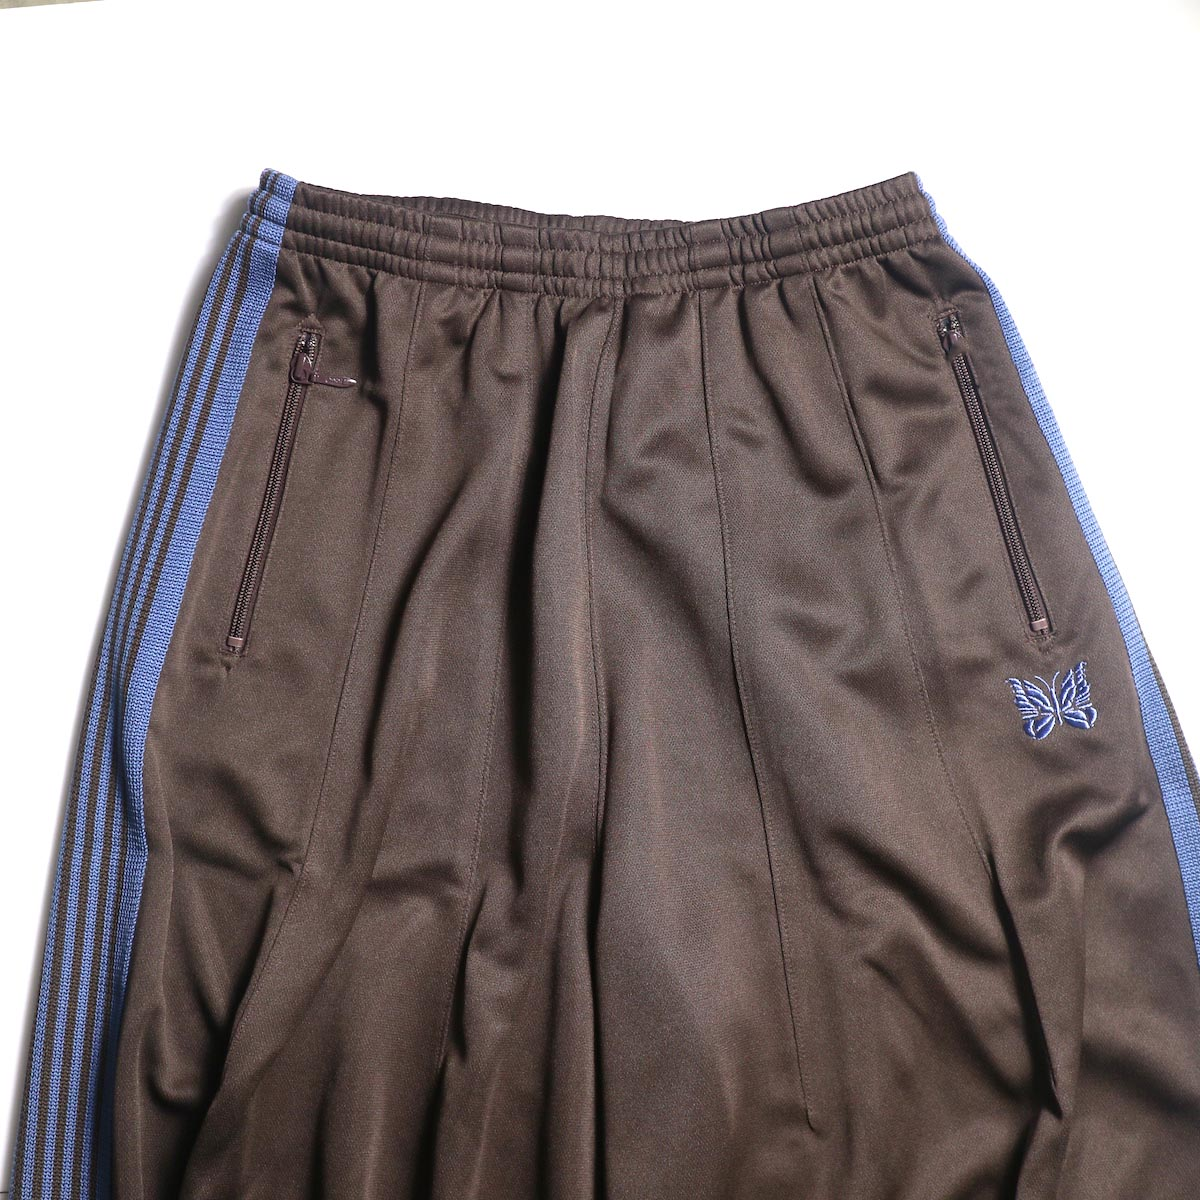 Needles / H.D. TRACK PANT - POLY SMOOTH (Brown)ウエスト